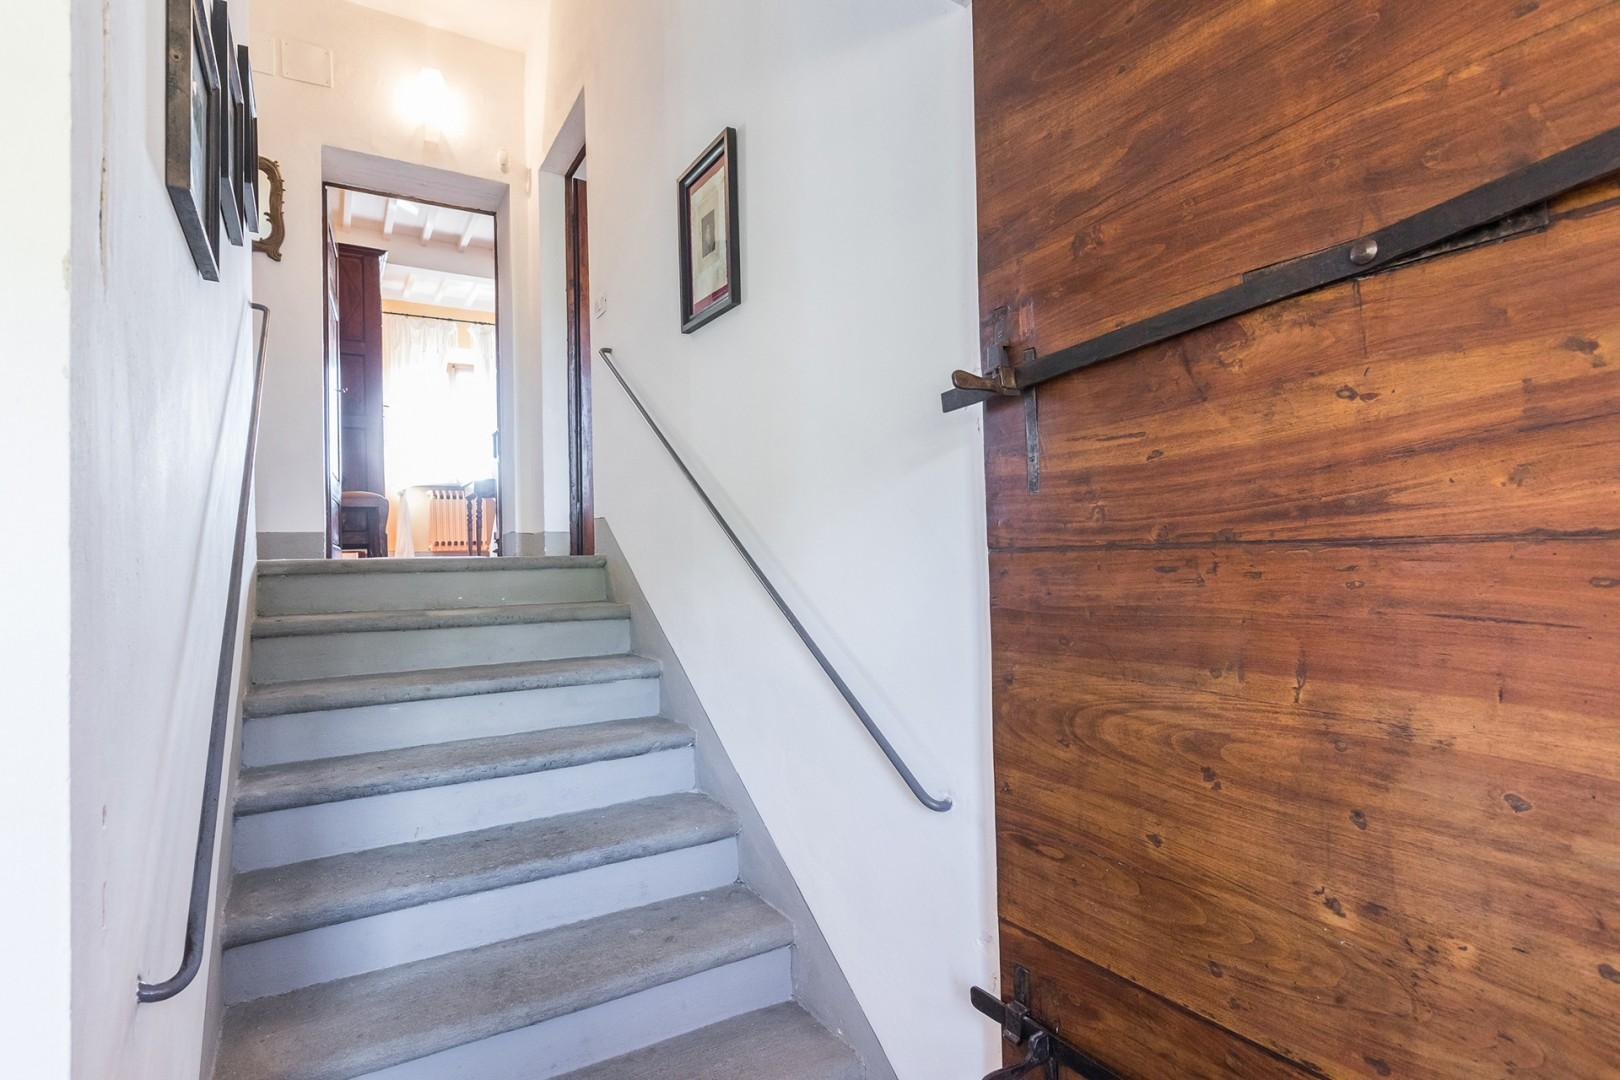 Staircase leading to the 2nd floor.